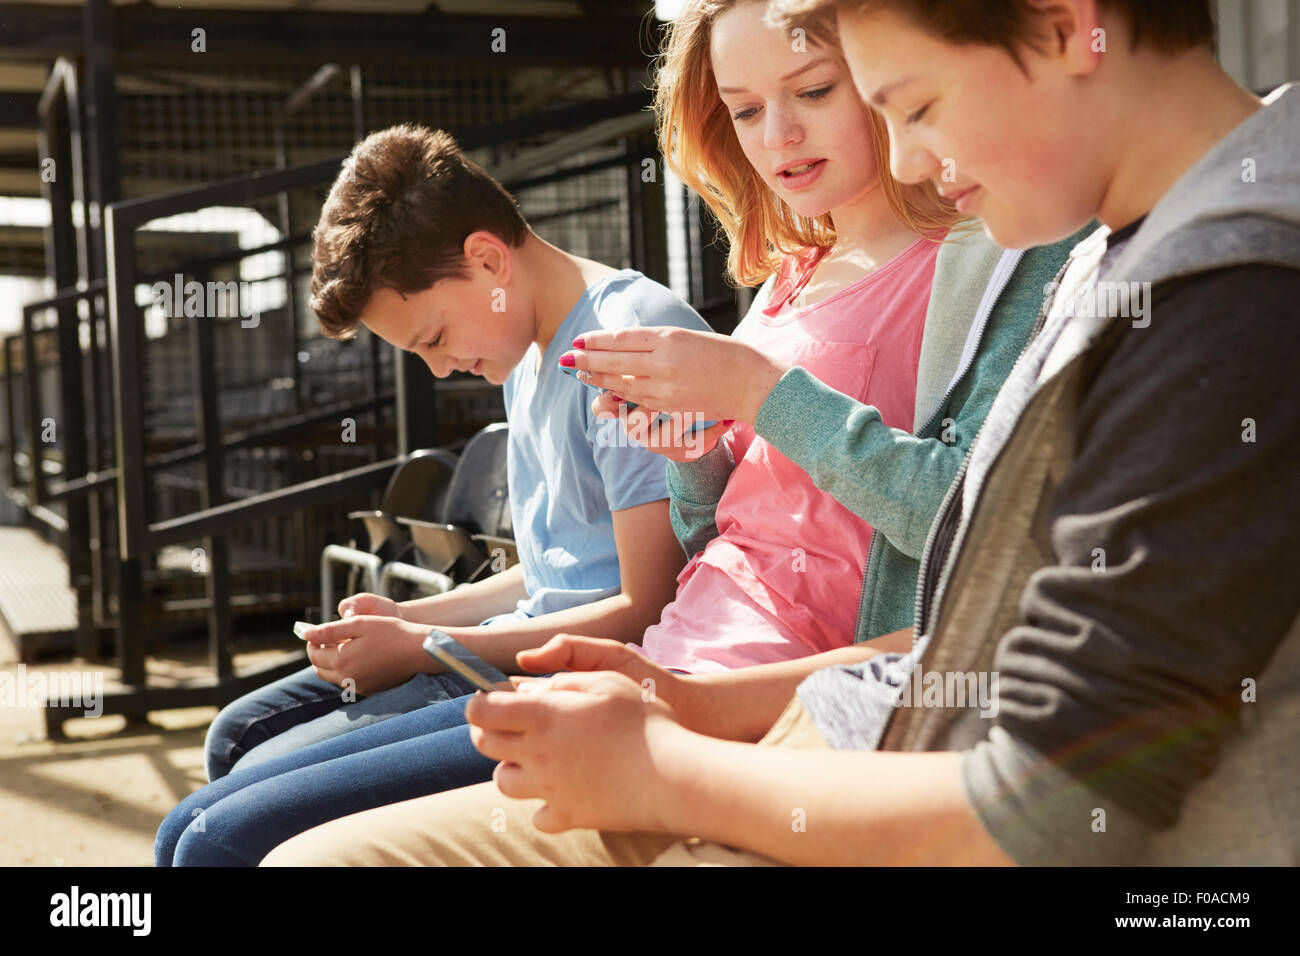 Four boys and girls reading smartphone texts in stadium stand - Stock Image